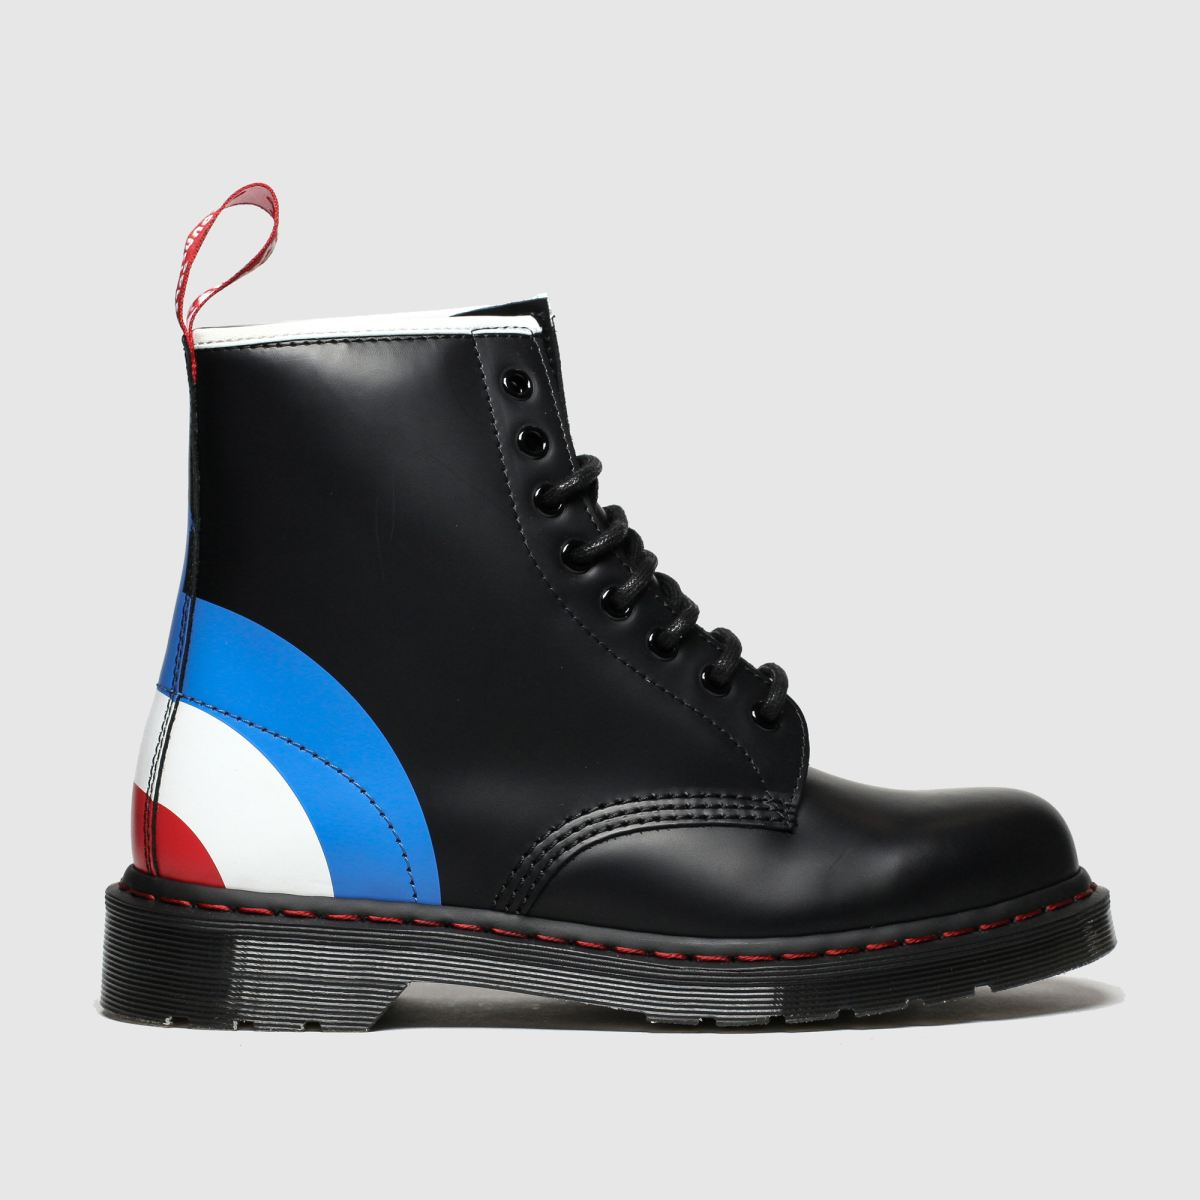 Dr Martens Black And Blue 1460 Who 8-eye Boots